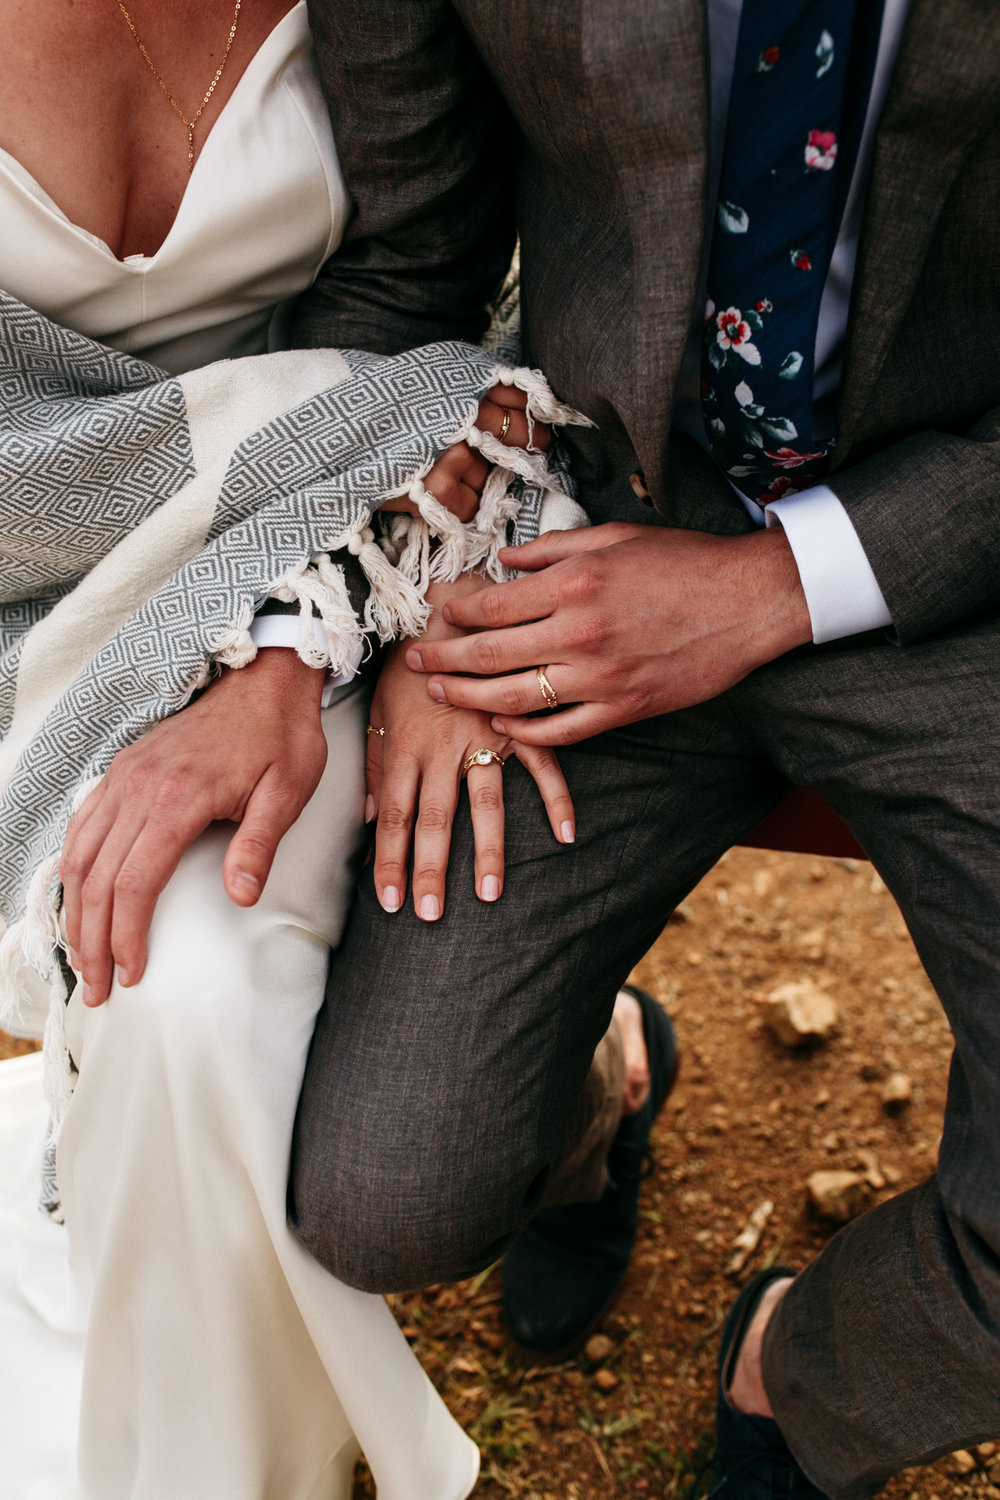 SamErica Studios - wedding rings and warm hands